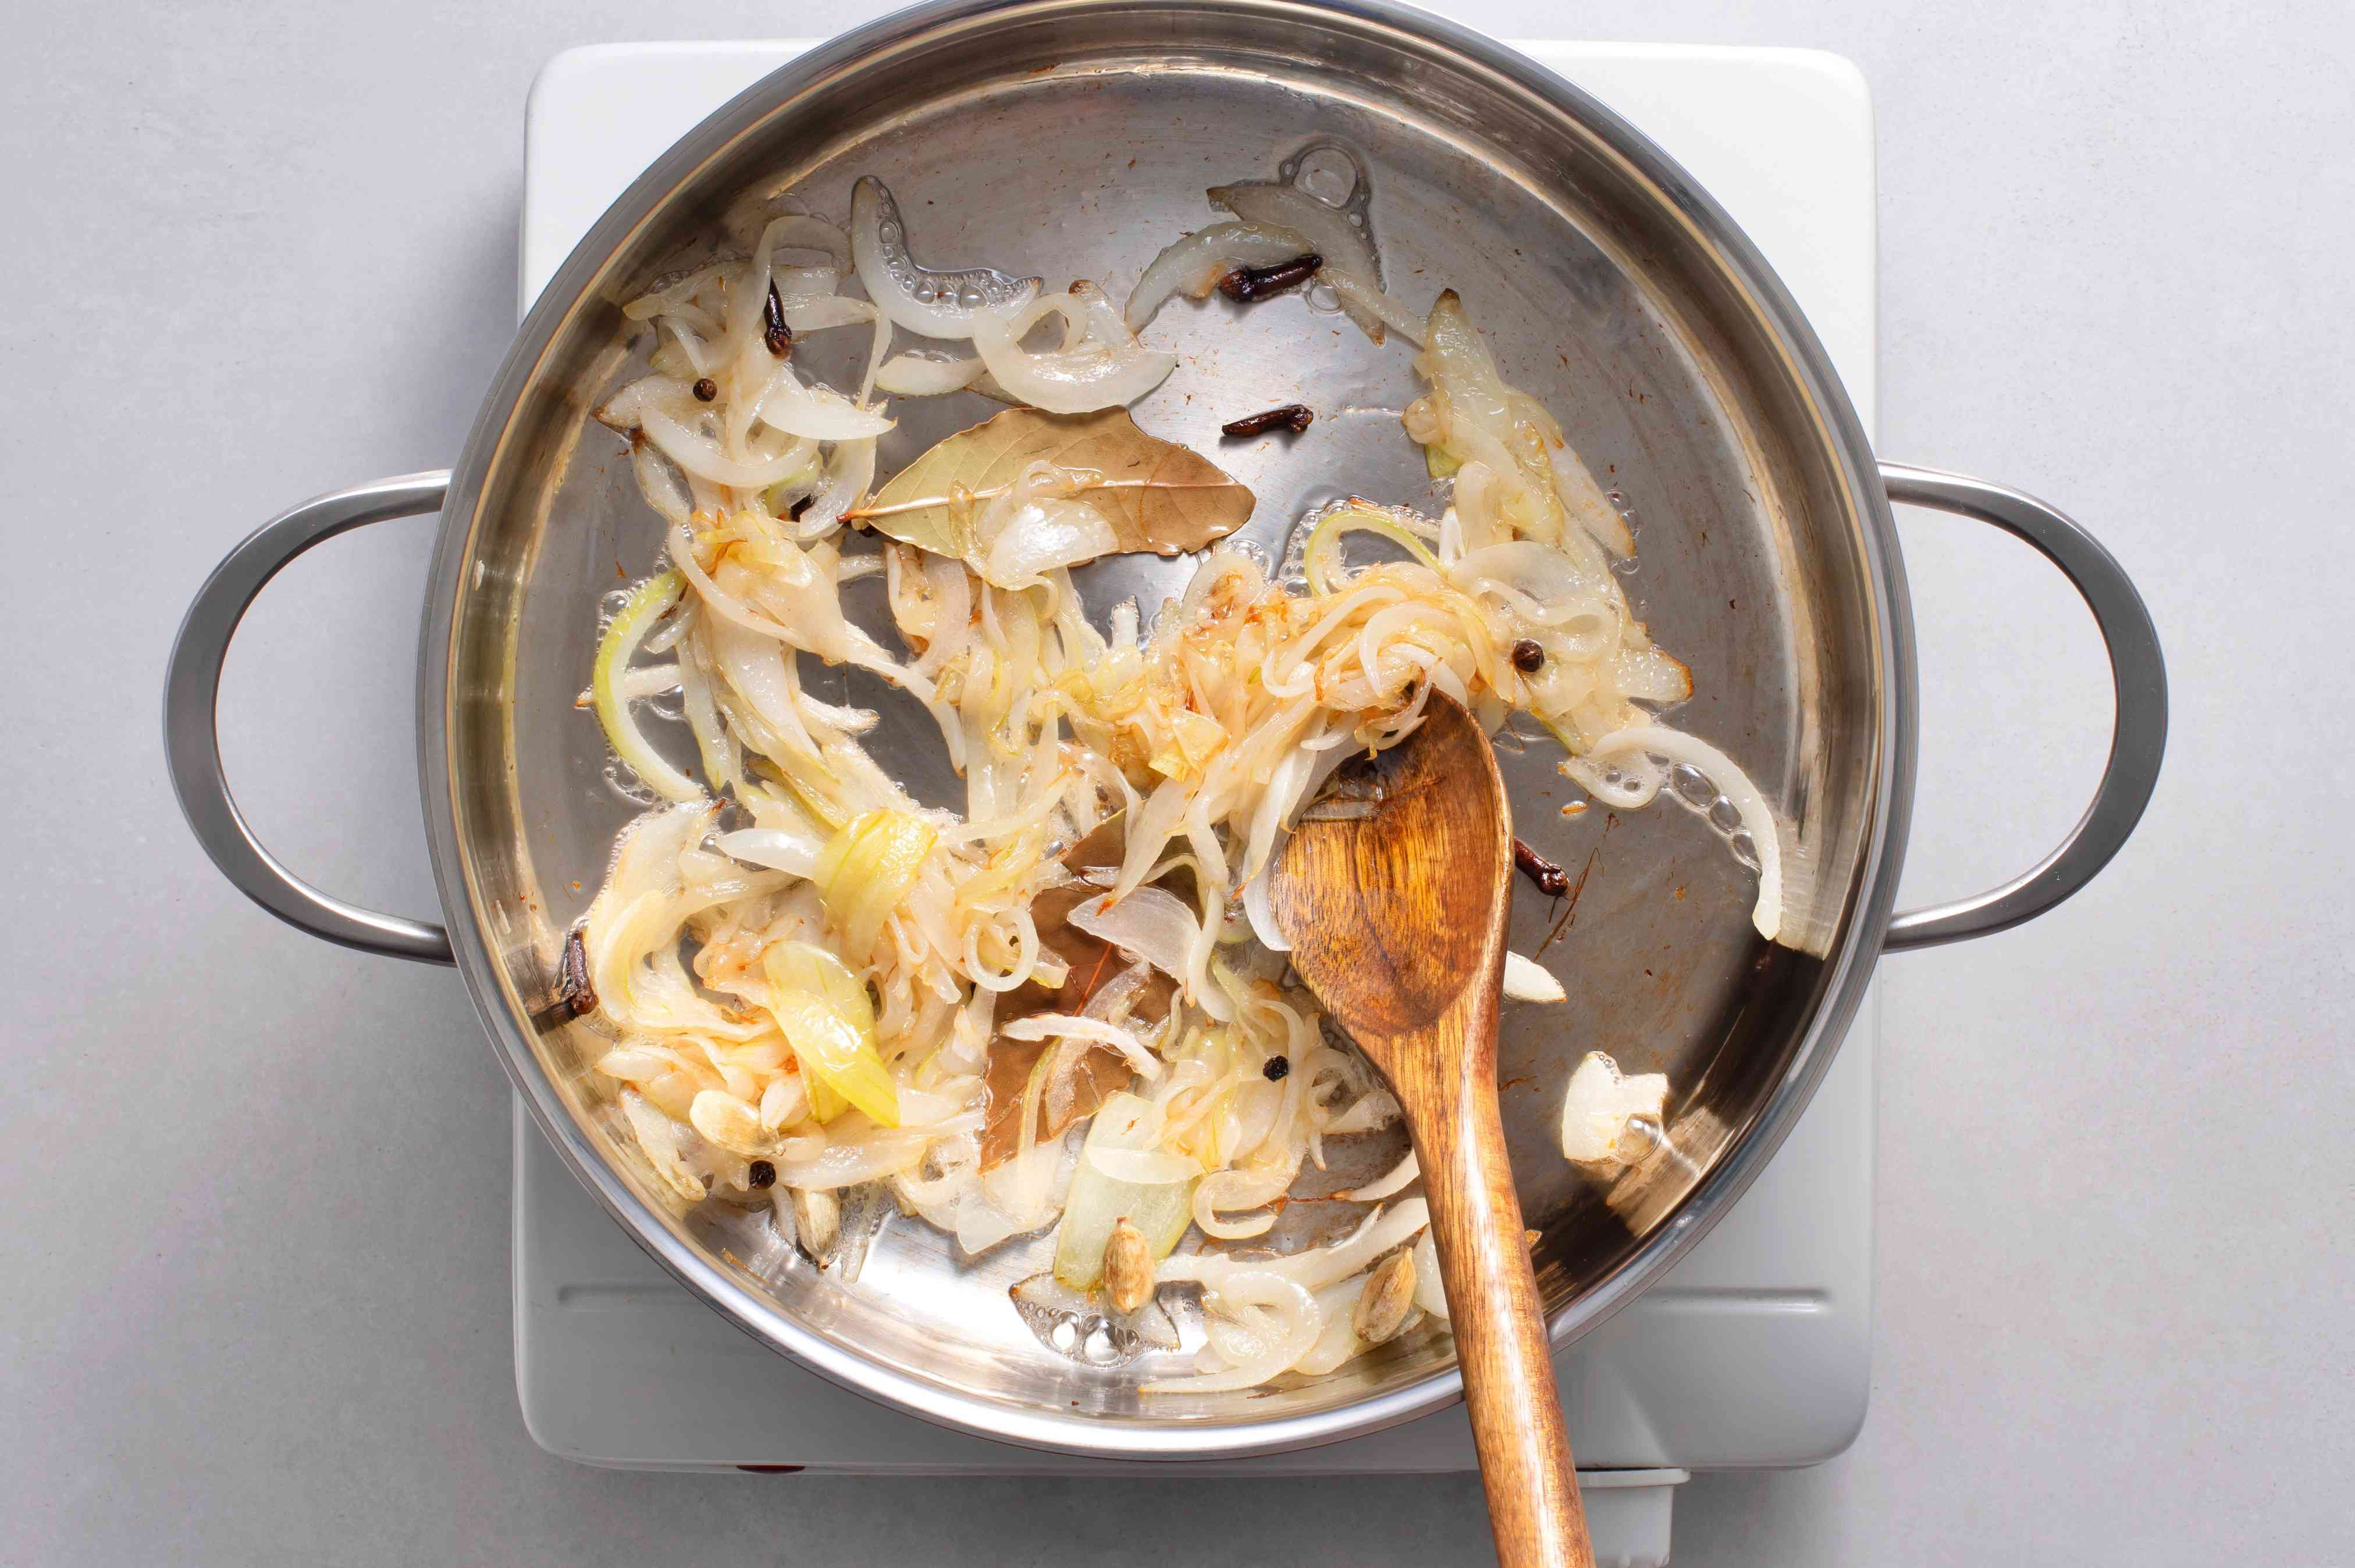 Sliced onions cooking in a pot with bay leaves